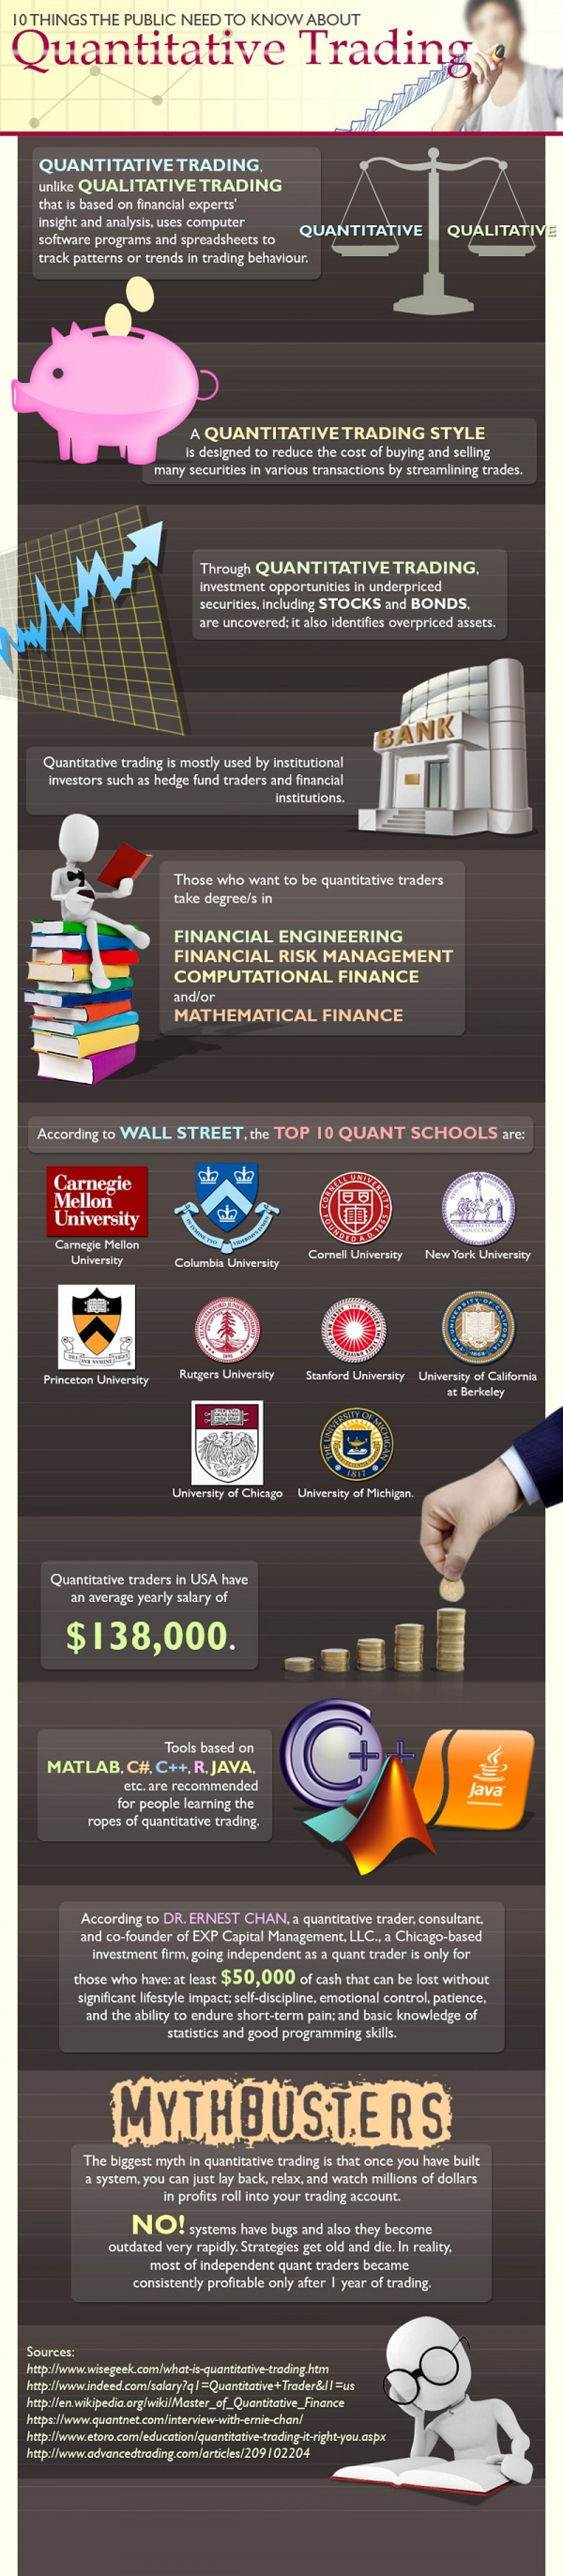 10 Things the Public Need to Know About Quantitative Trading Infographic